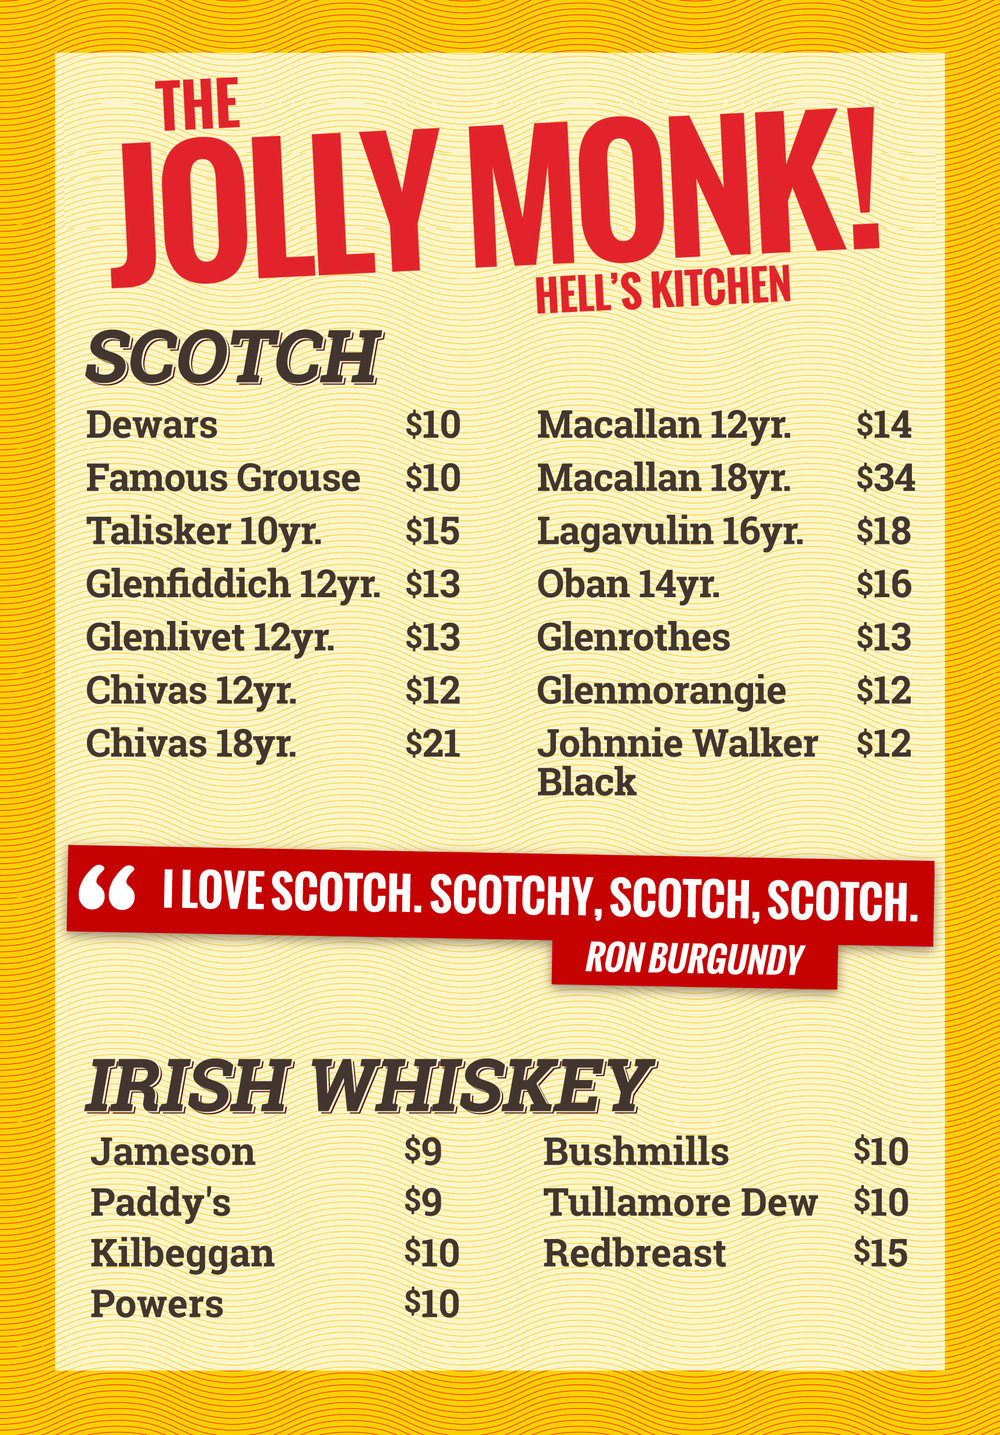 JM-scotch-irish-may-2016.jpg